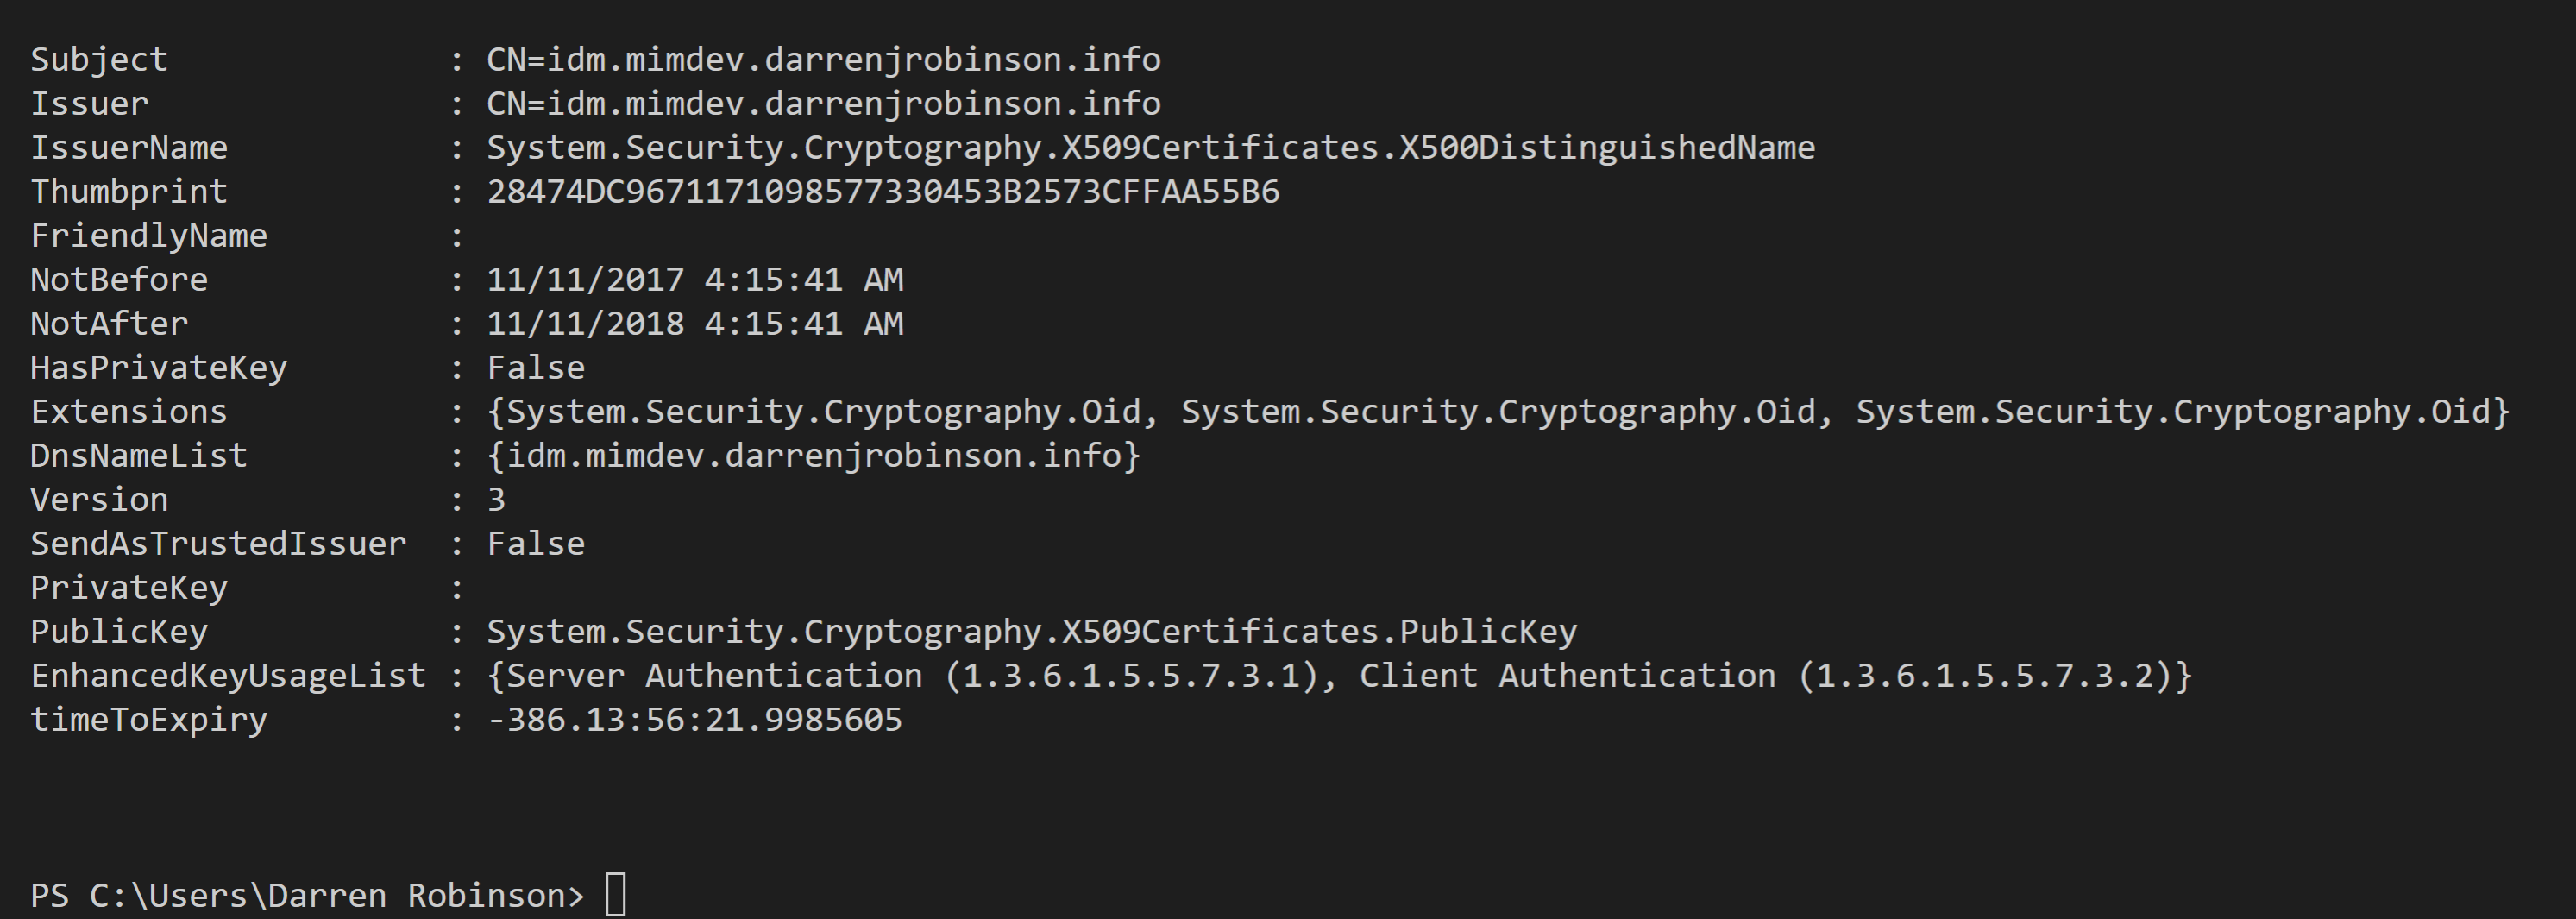 X509Details output for an expired certificate